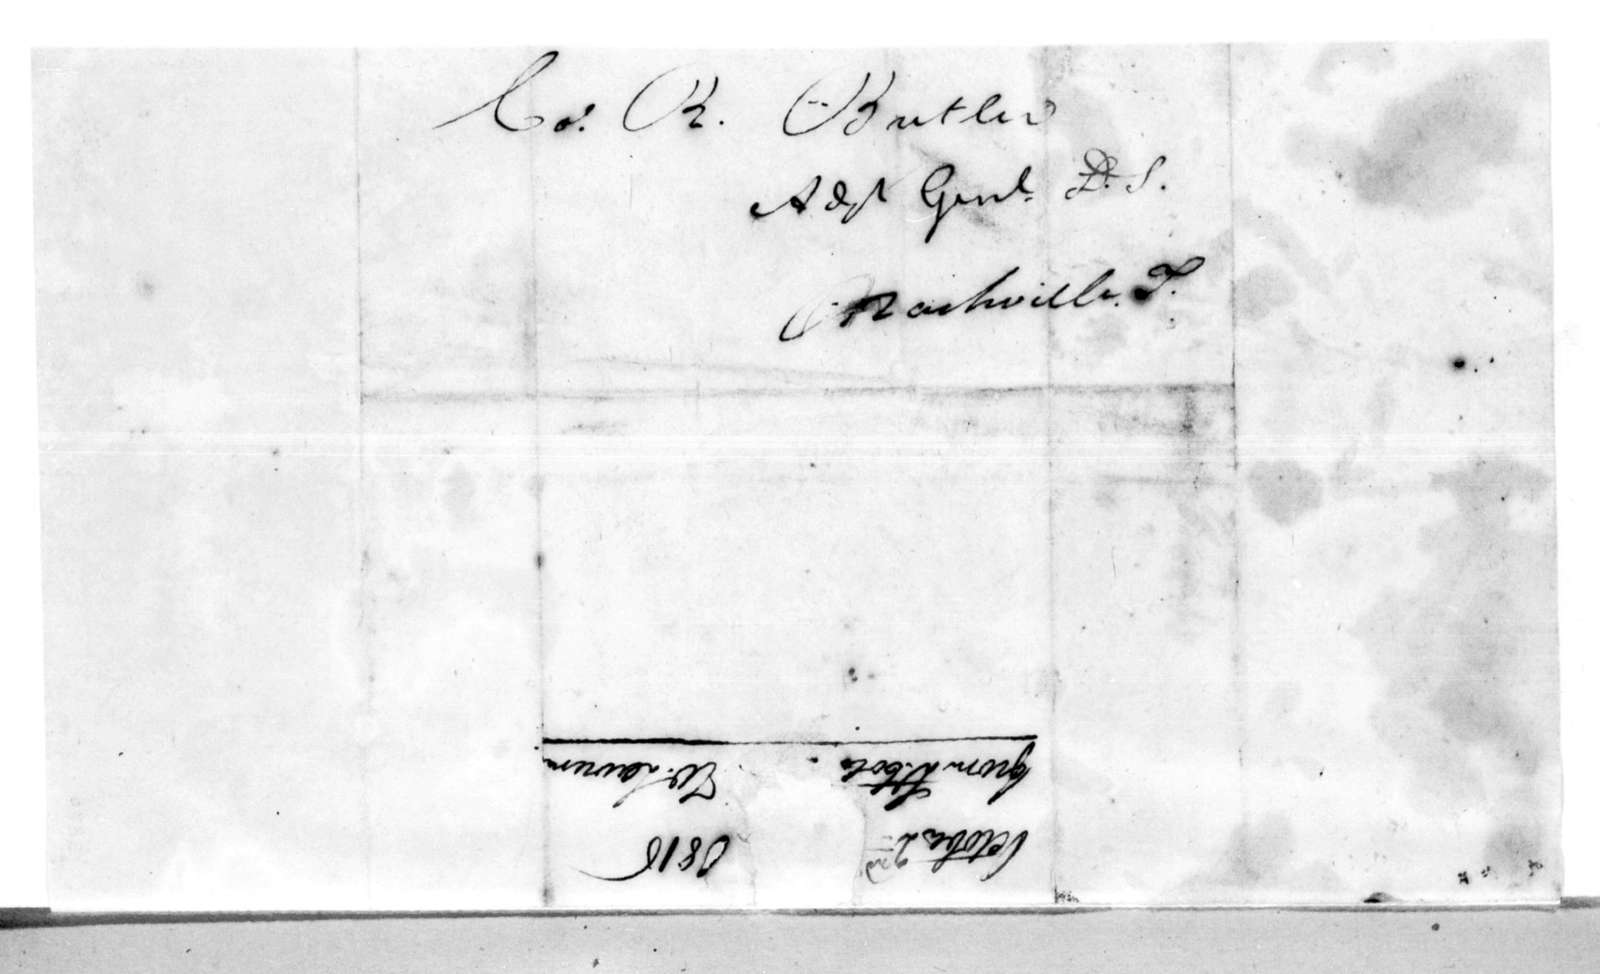 William Lawrence to Robert Butler, October 2, 1816